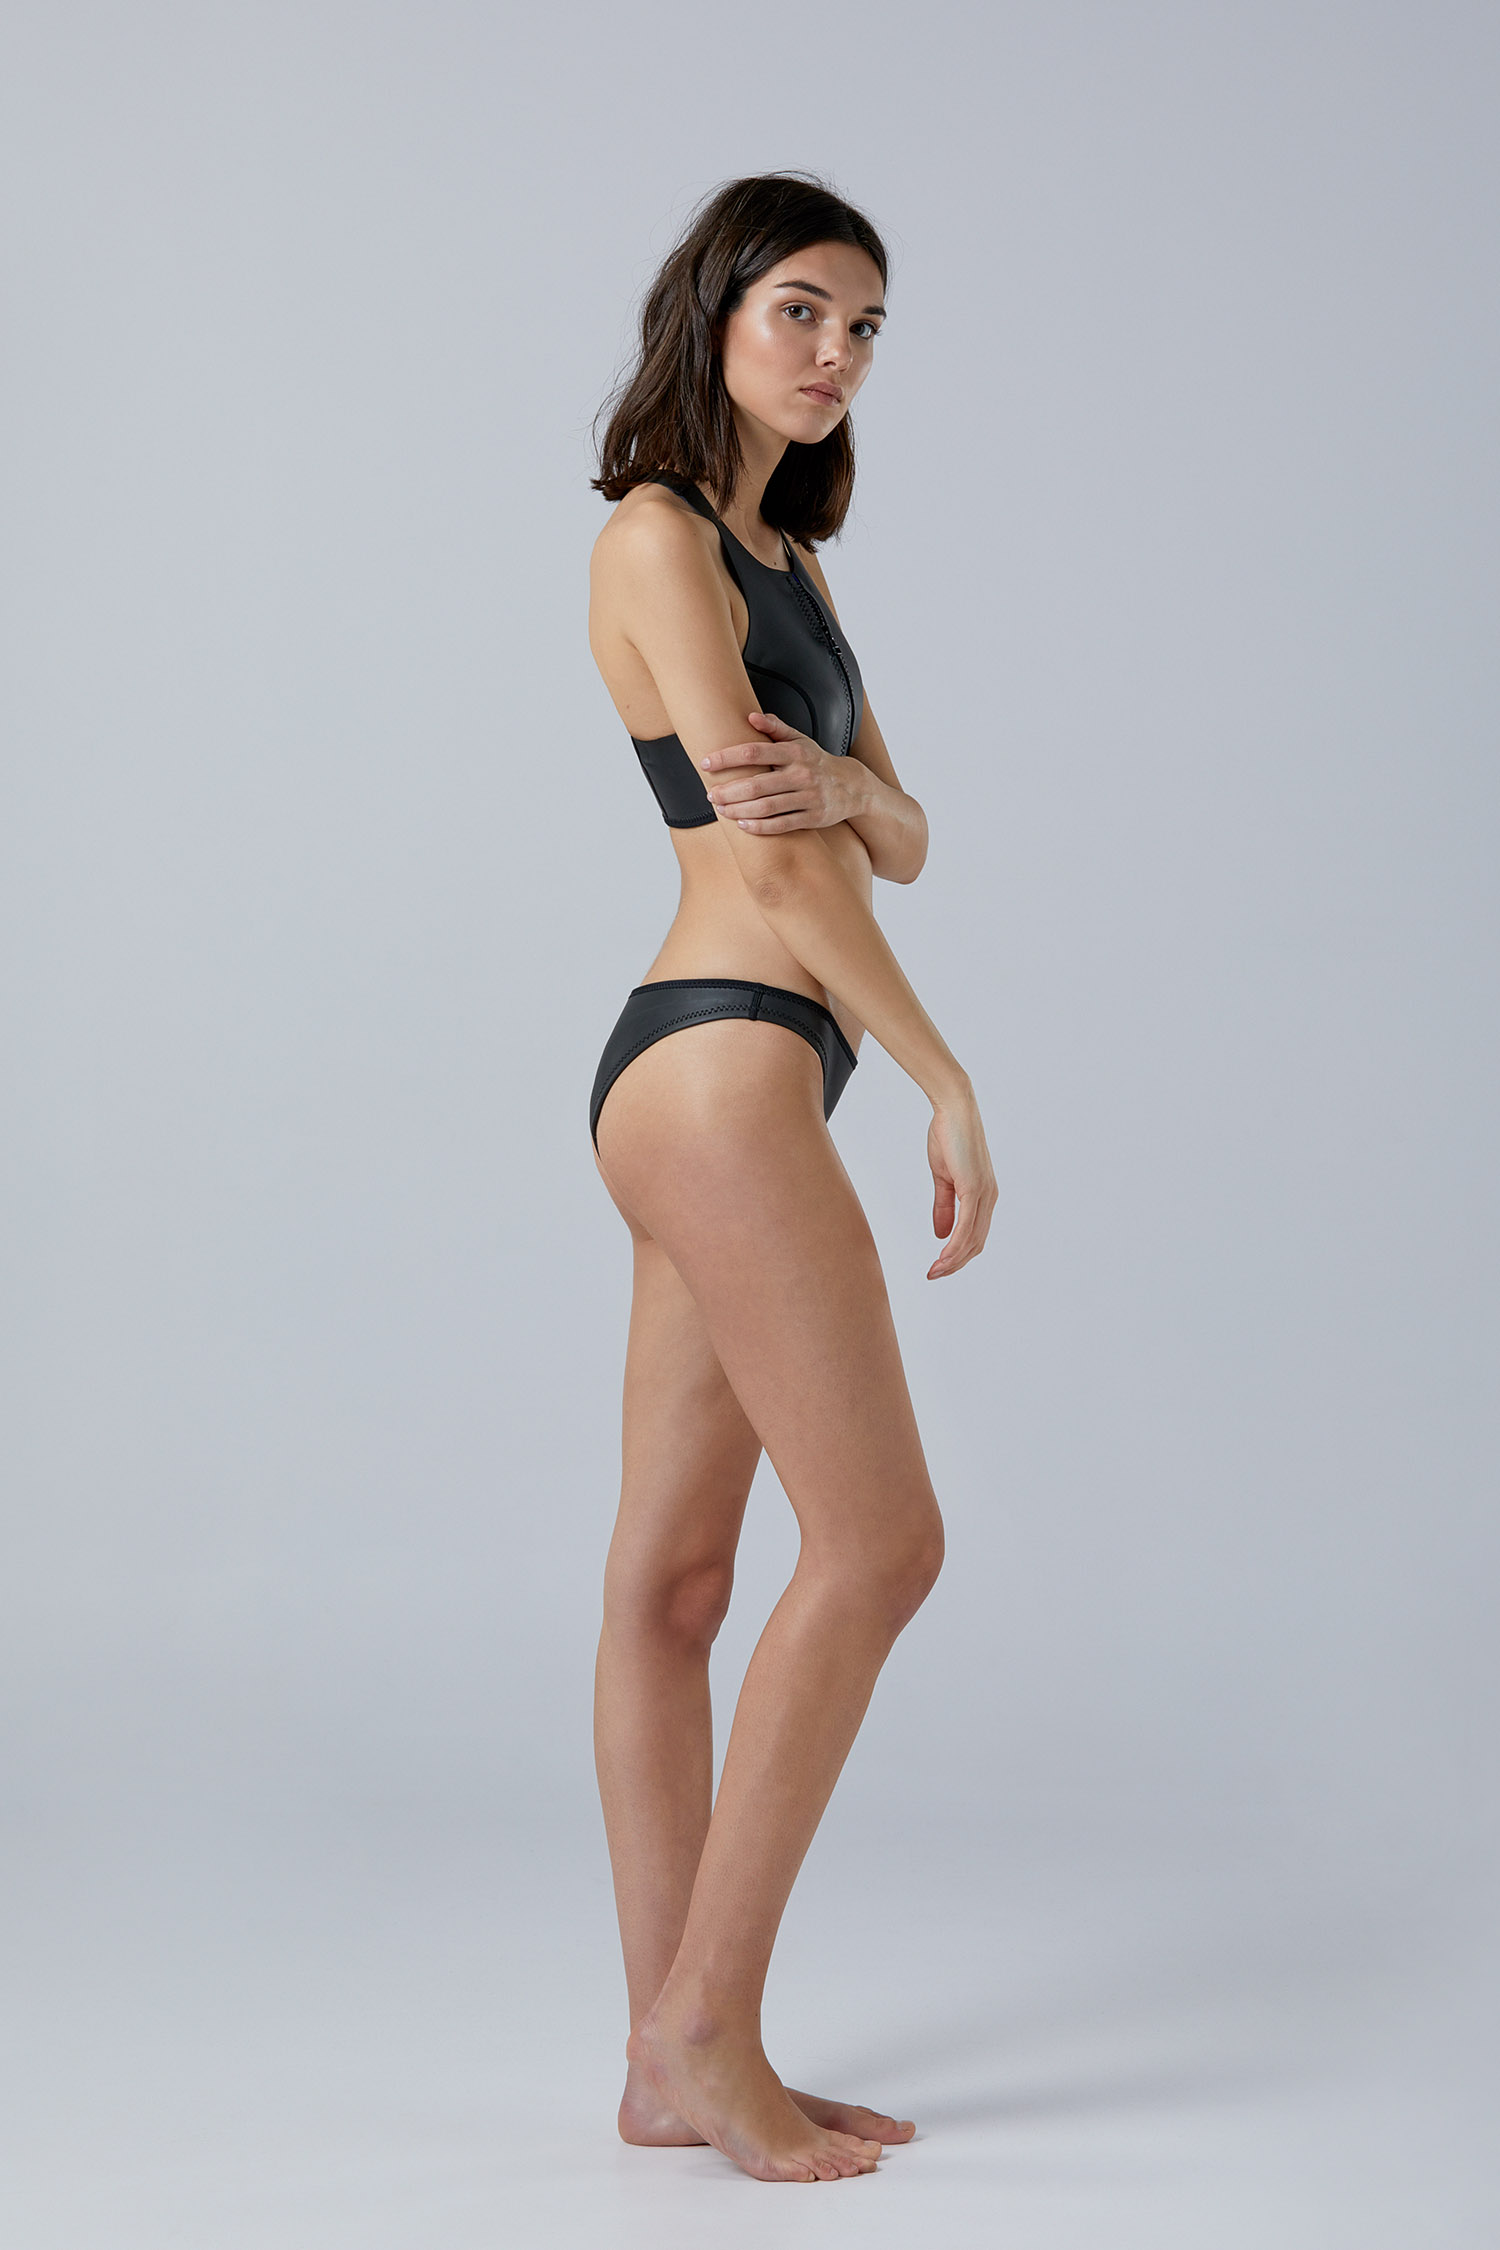 NOW_THEN Margo ecoprene ecofriendly neoprene surf bikini